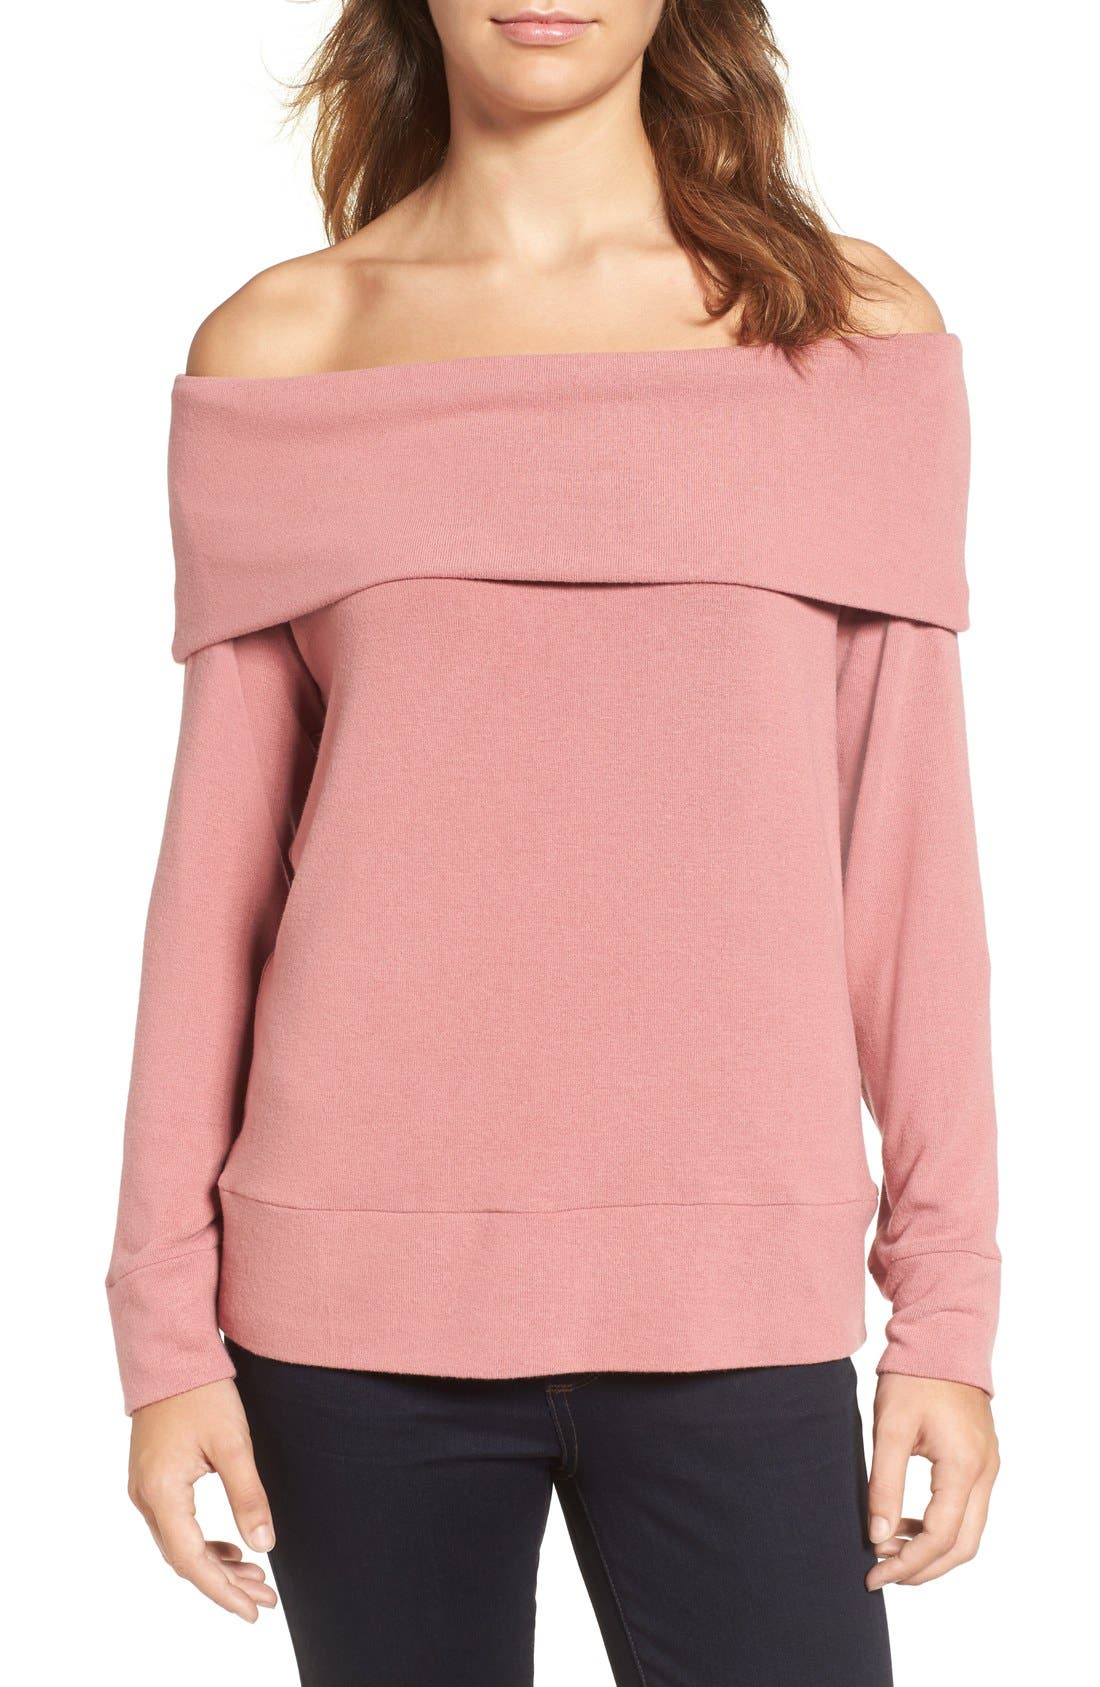 Alternate Image 1 Selected - cupcakes and cashmere 'Brooklyn' Off the Shoulder Top